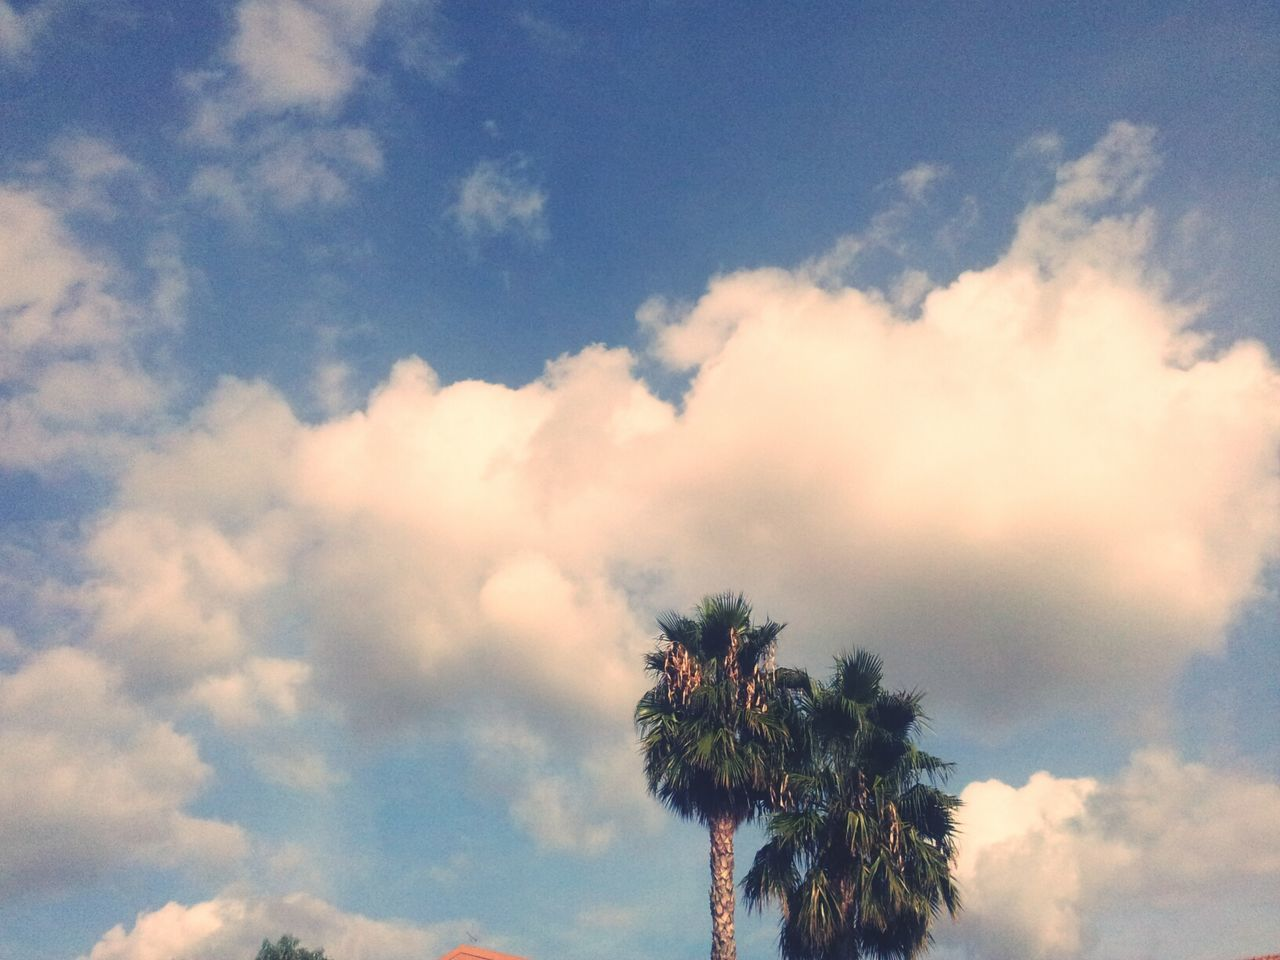 sky, beauty in nature, nature, low angle view, cloud - sky, tree, tranquility, scenics, outdoors, day, palm tree, no people, blue